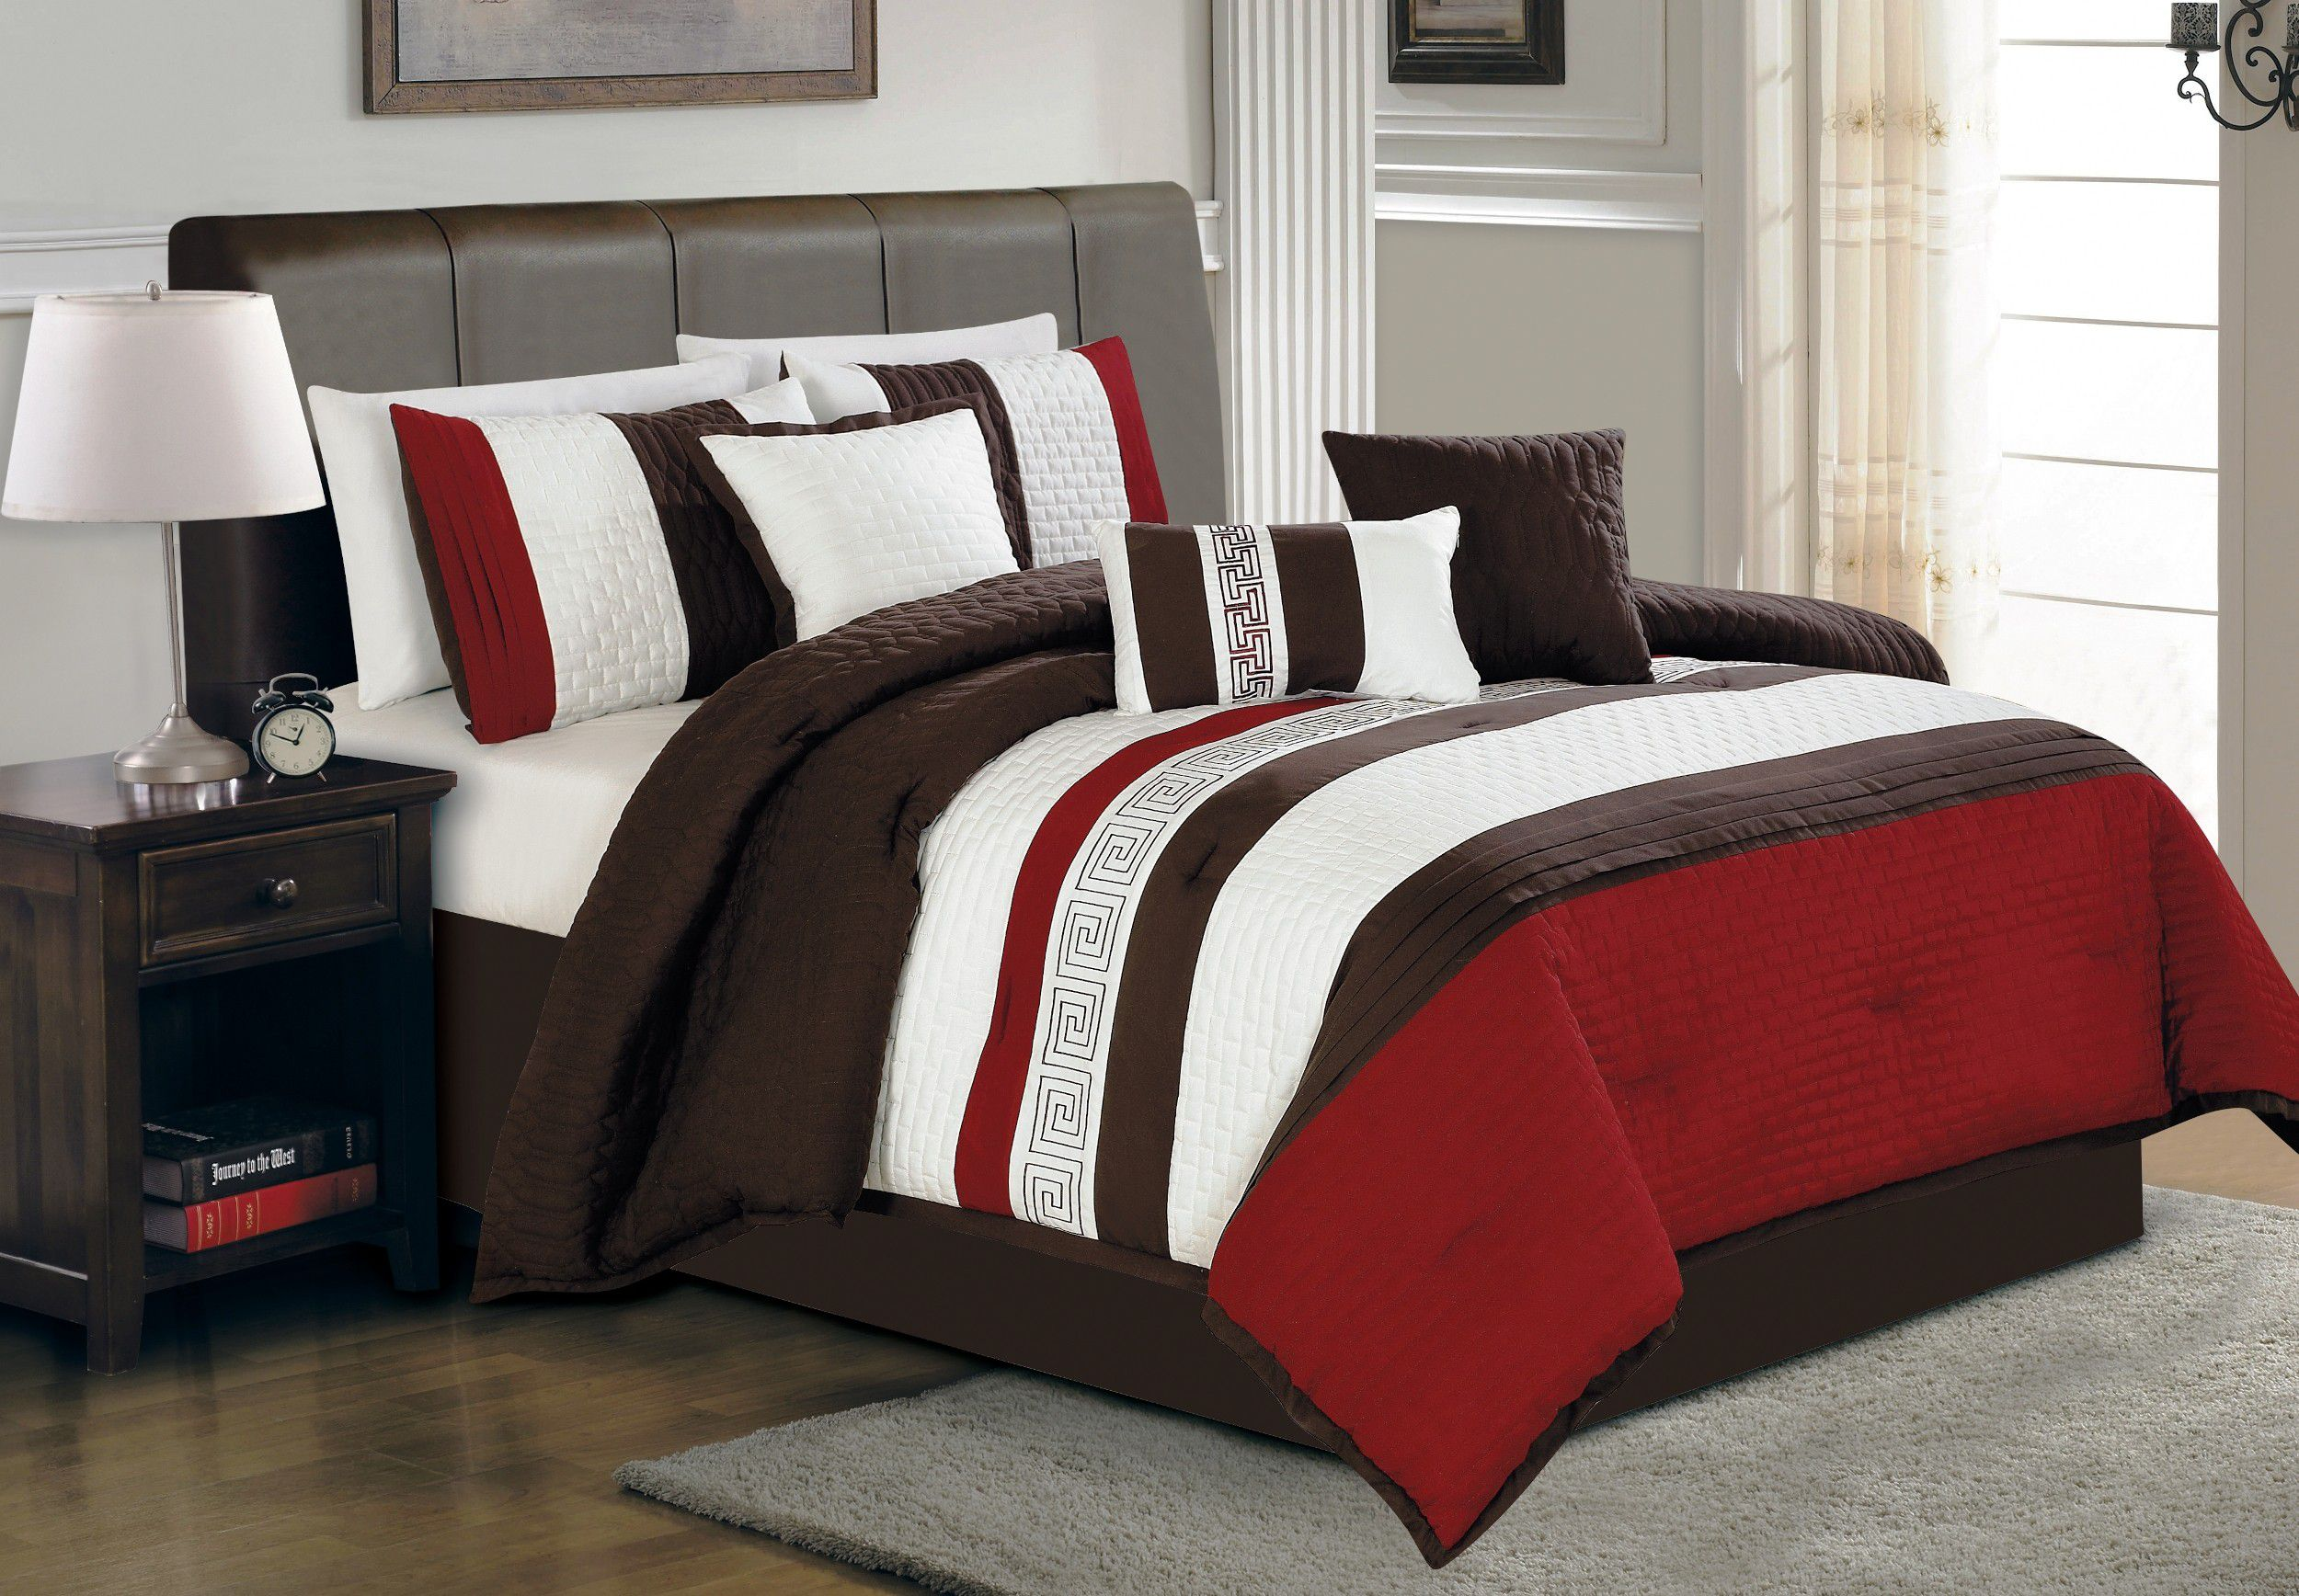 Choose this Teen Boy Bedding for Brown Leather Bed in Traditional Bedroom with Oak Nightstand